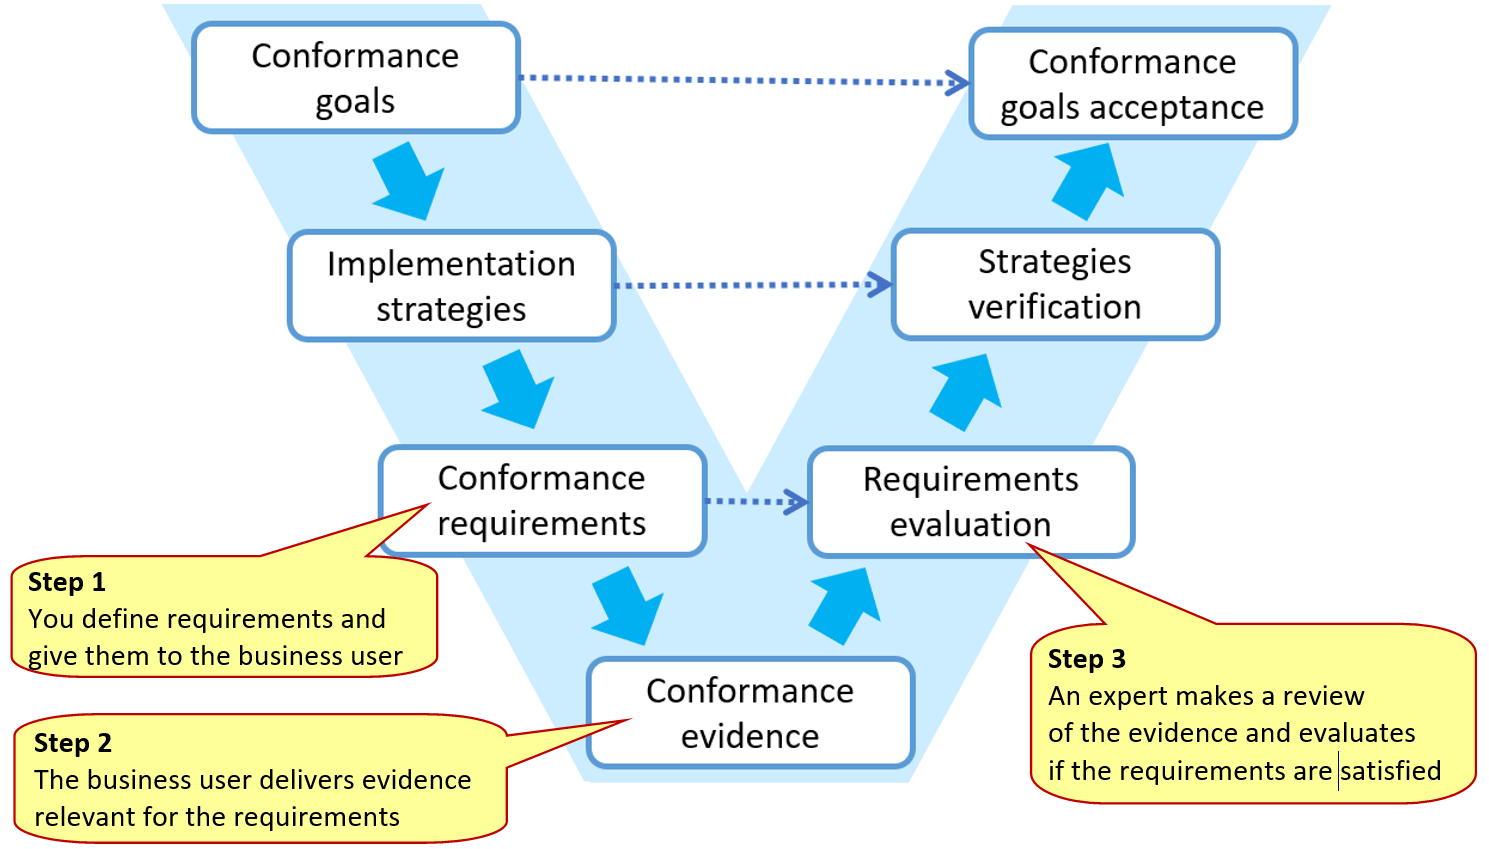 use of evidence in conformance process